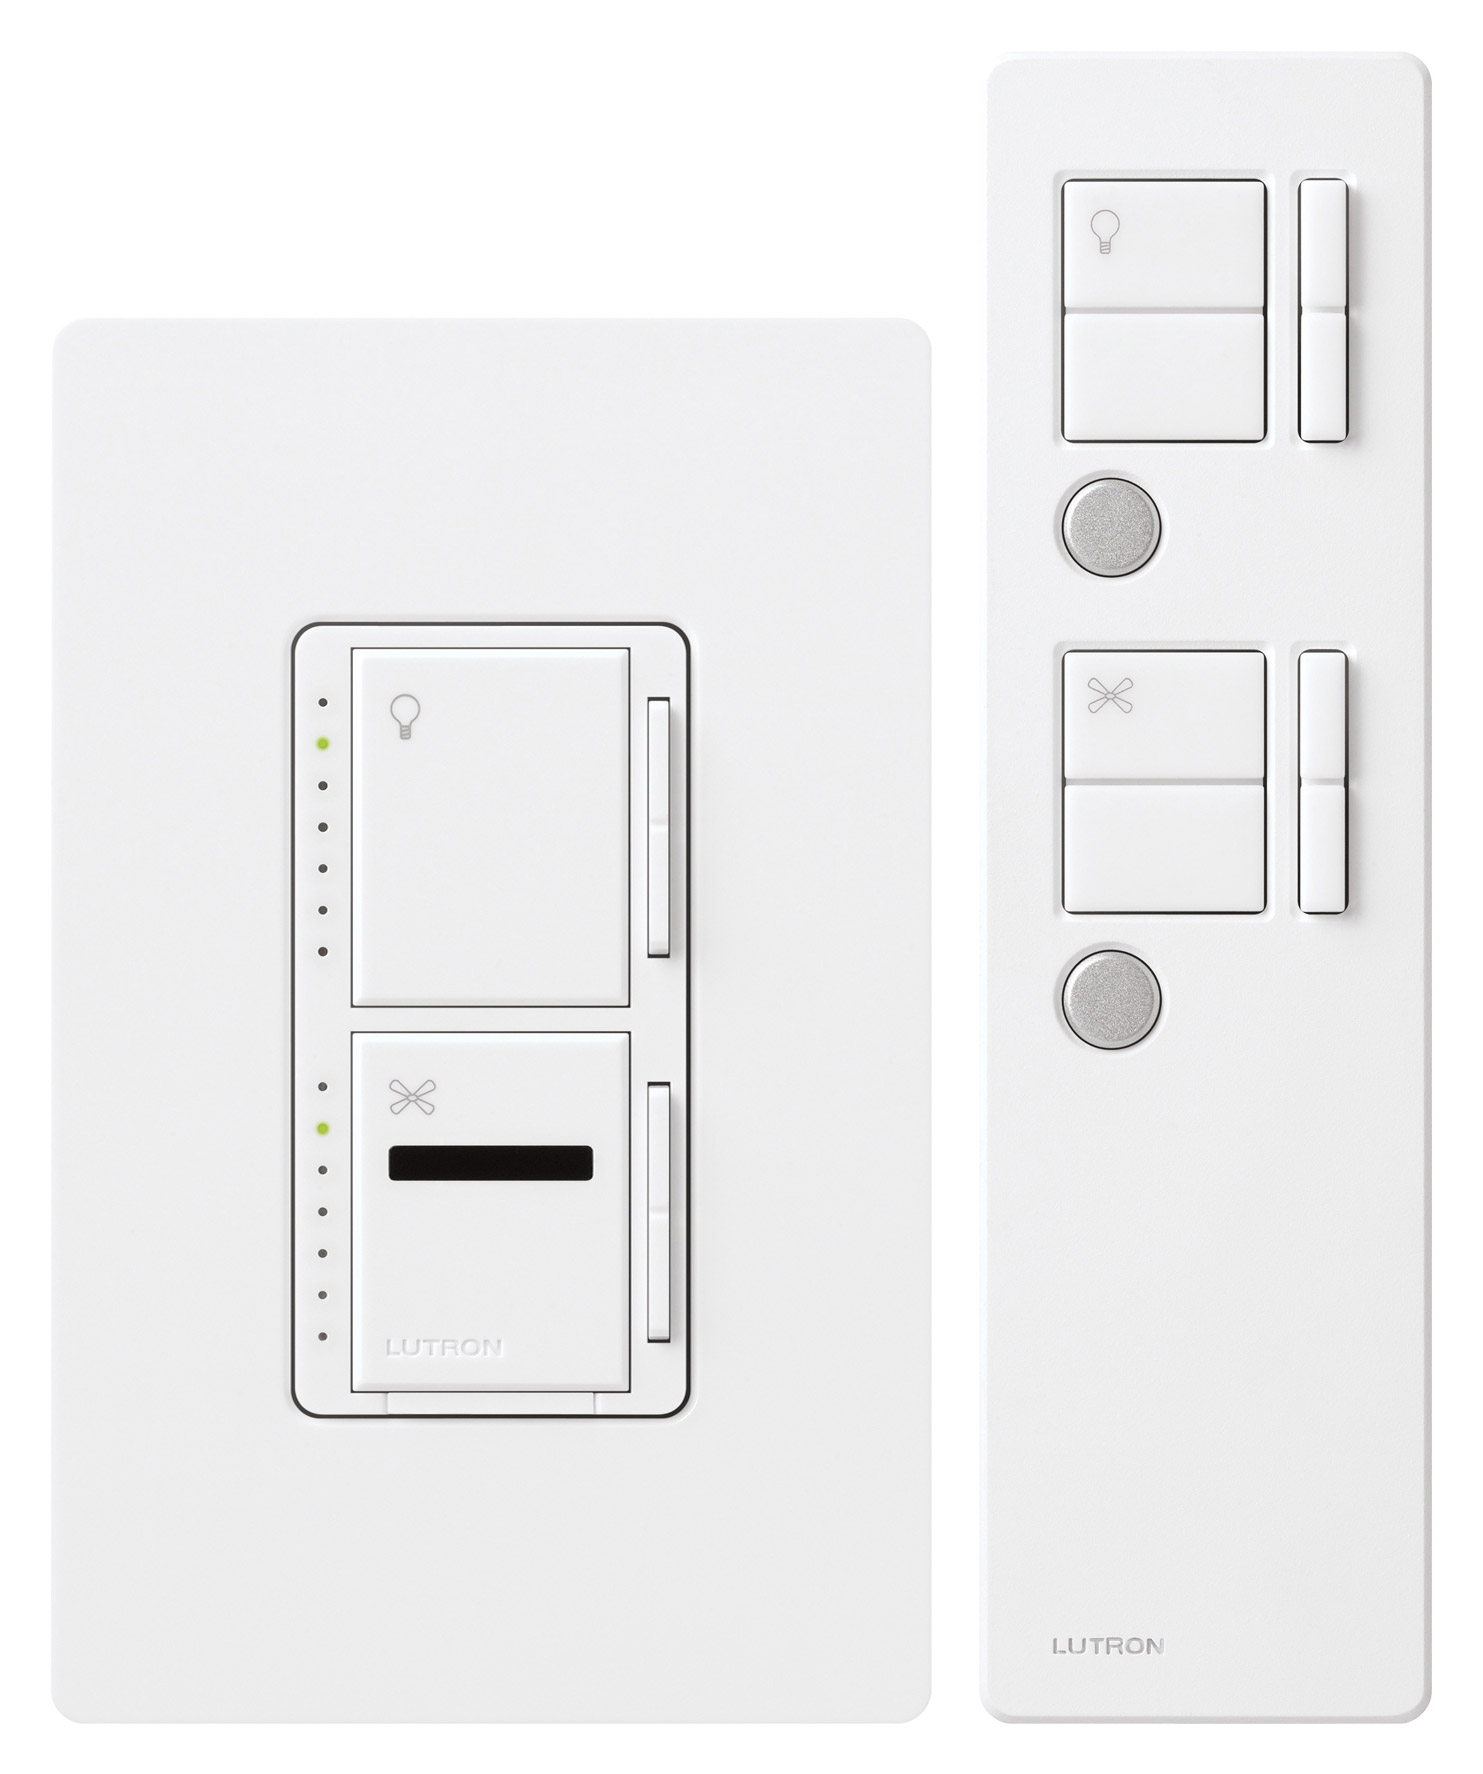 Dimmer And Fan Control Switch Home Design Ideas Light Wiring Diagram Lutron S2 Lfsq Mir Lfqmt Wh Maestro Ir 120v Multi Location Dual Incandescent